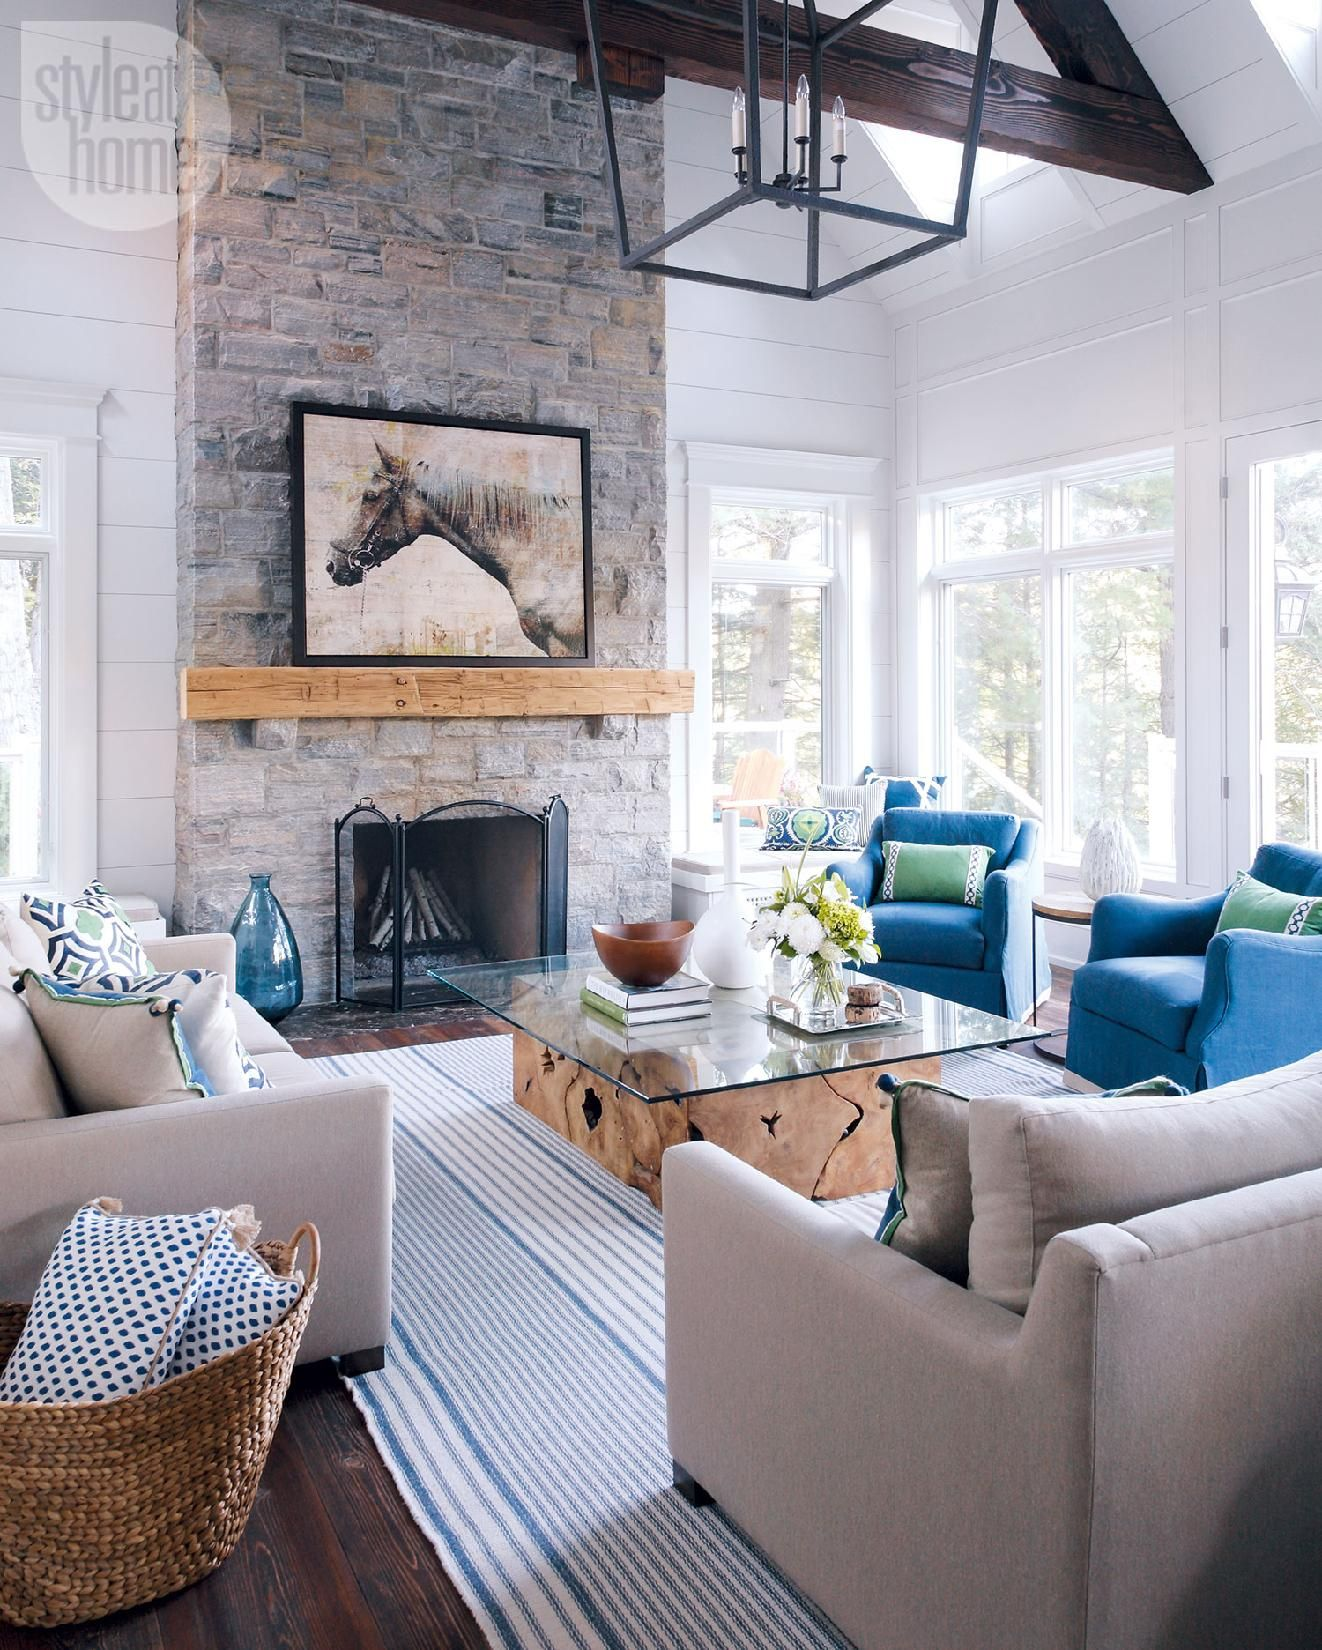 25 stylish summer homes grey stone fireplace wood mantle and